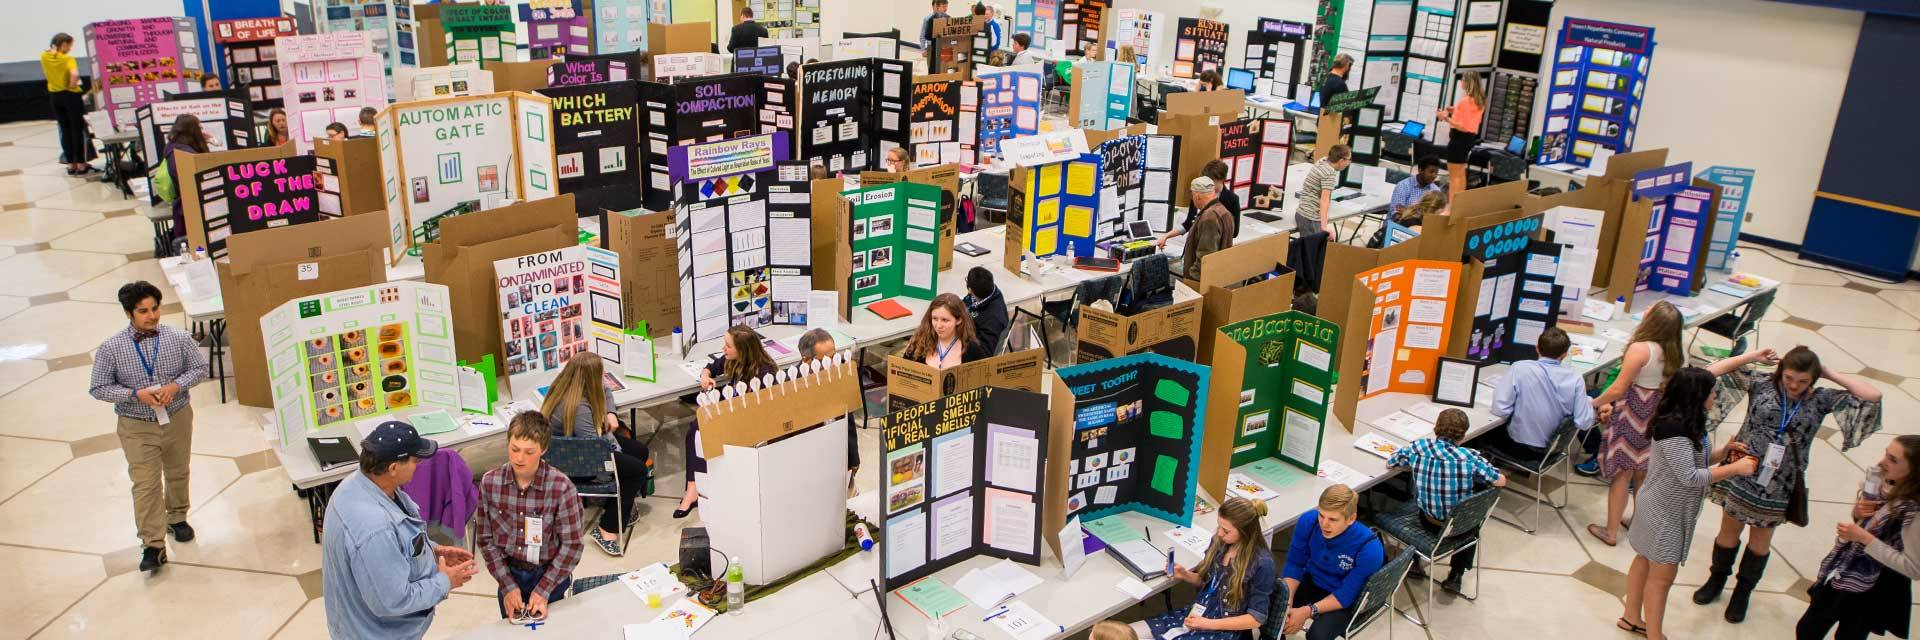 69th annual north dakota state science and engineering fair